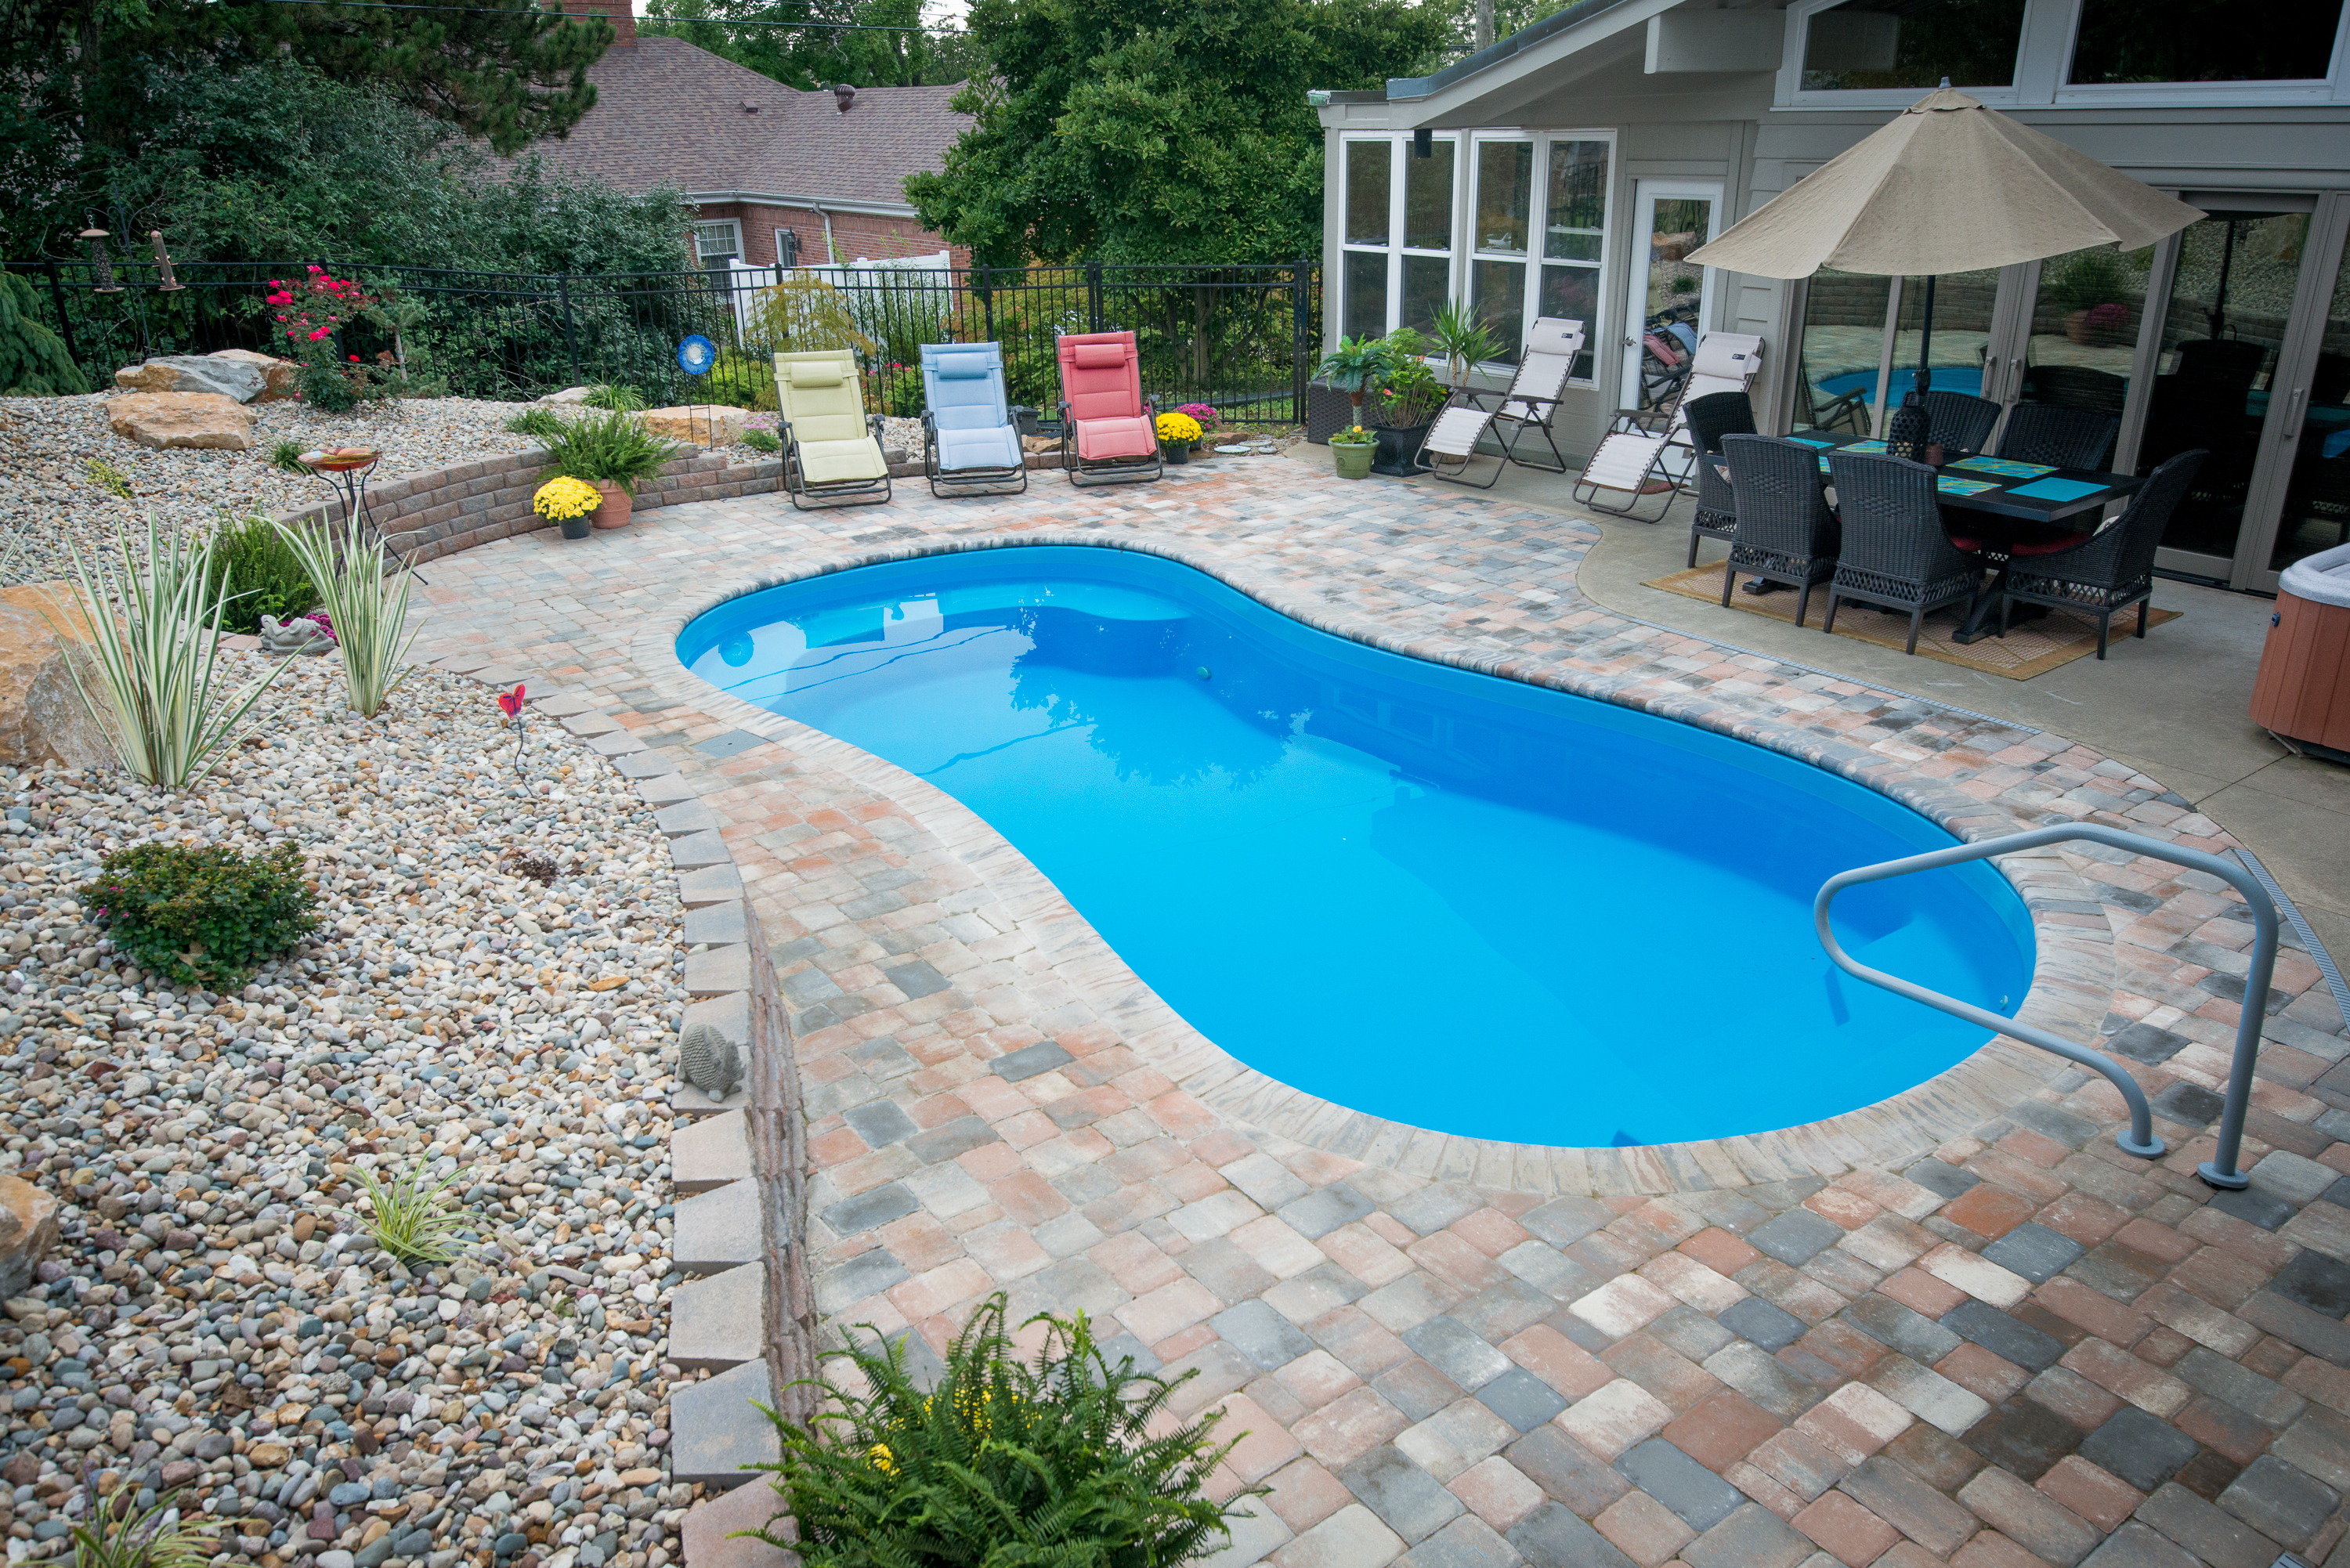 A Fiberglass Pool Might Be The Perfect Fit For You At Hendrick We Are Happy To Provide With Free Onsite Estimate And Evaluation